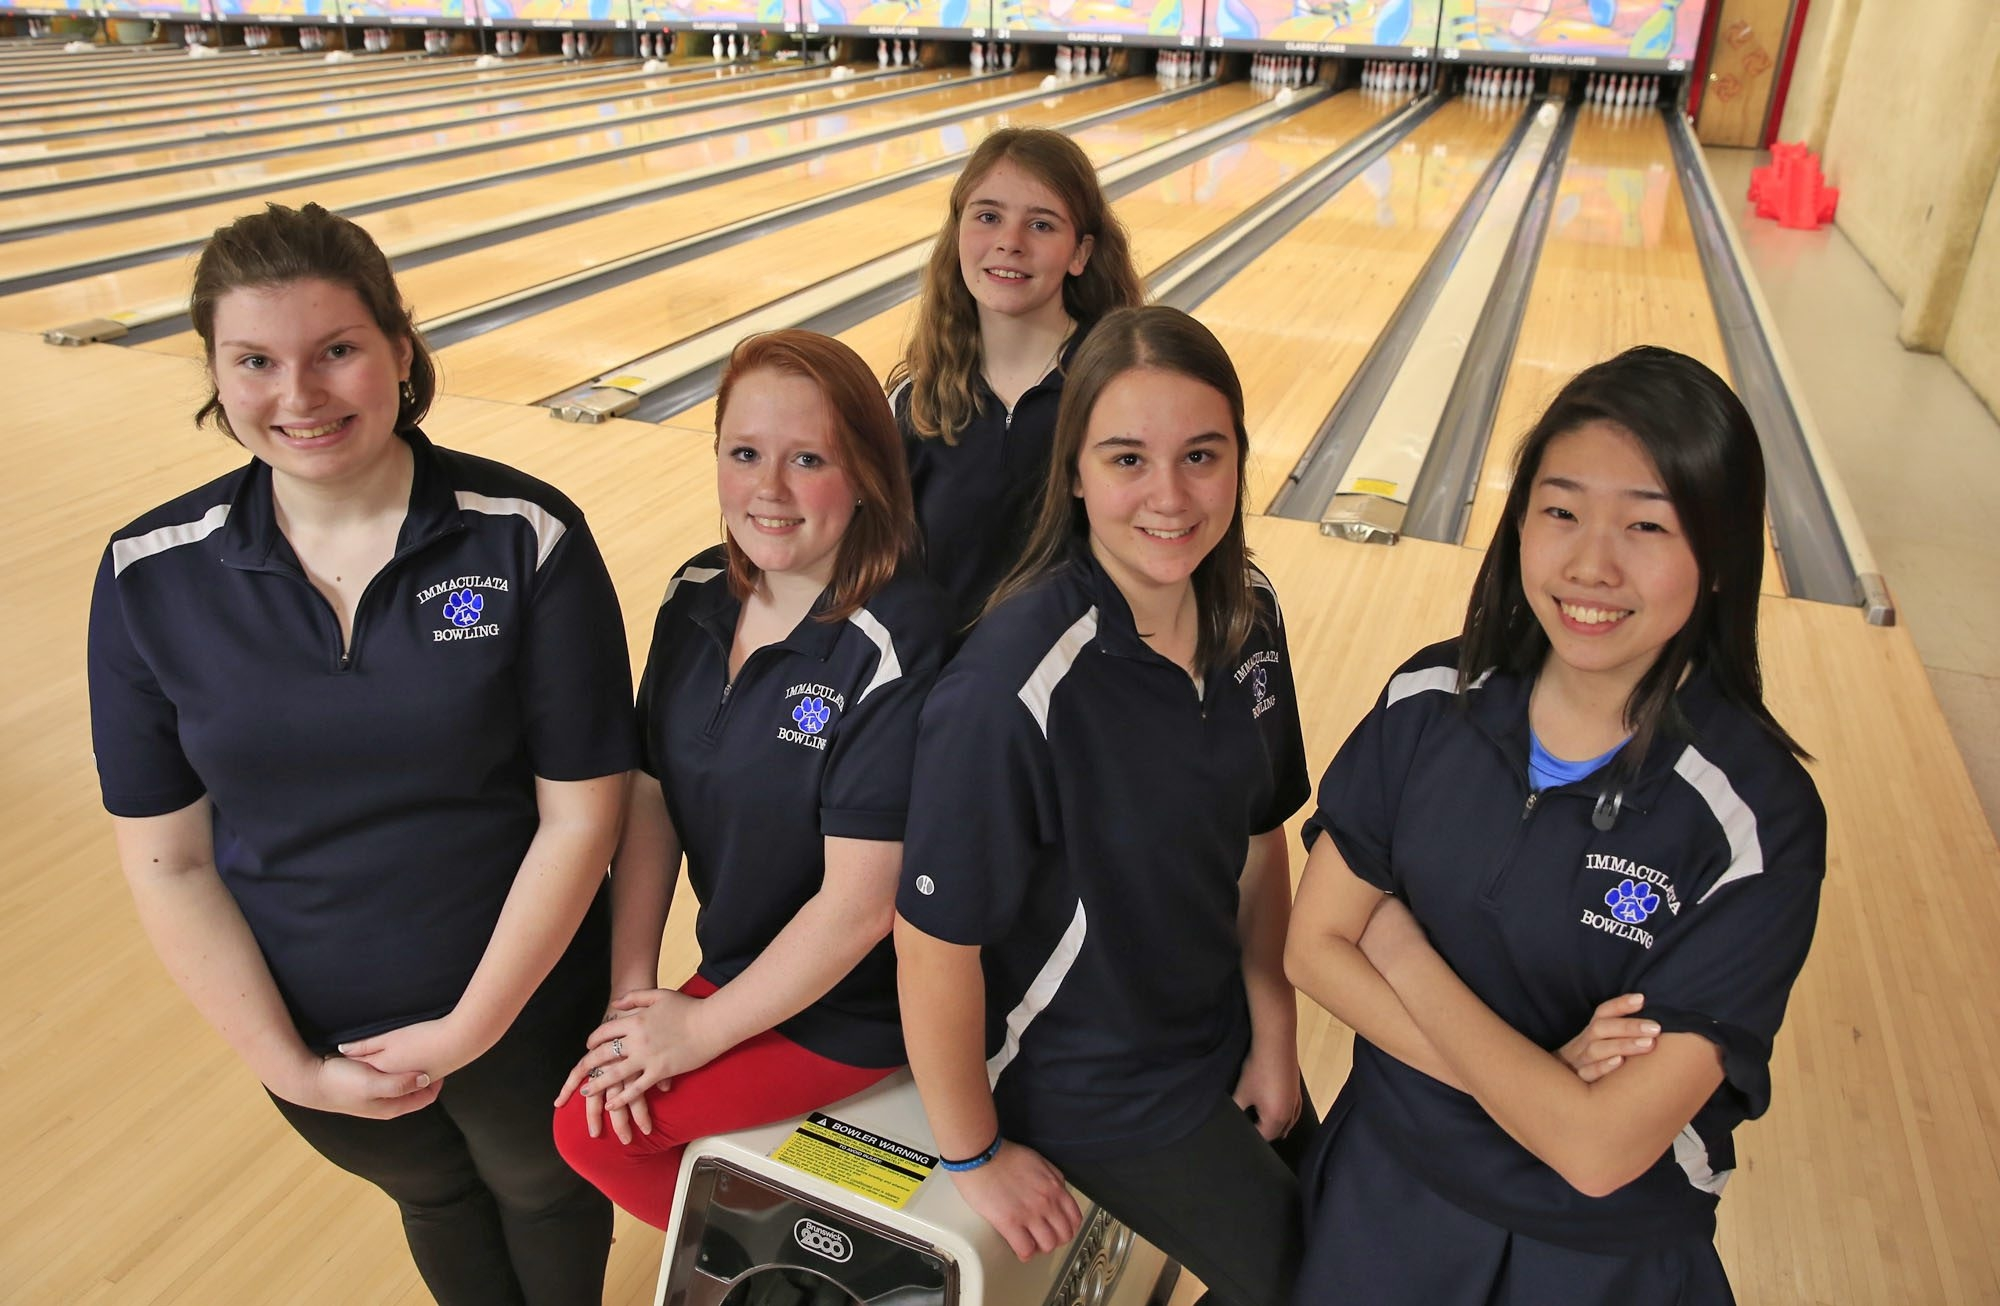 Kaitlyn Gernatt, Kelsey Cashion, Abigail Swiger, Samantha Batchev and May Ren led Immaculata's girls bowling team to the regular-season and postseason Monsignor Martin titles.